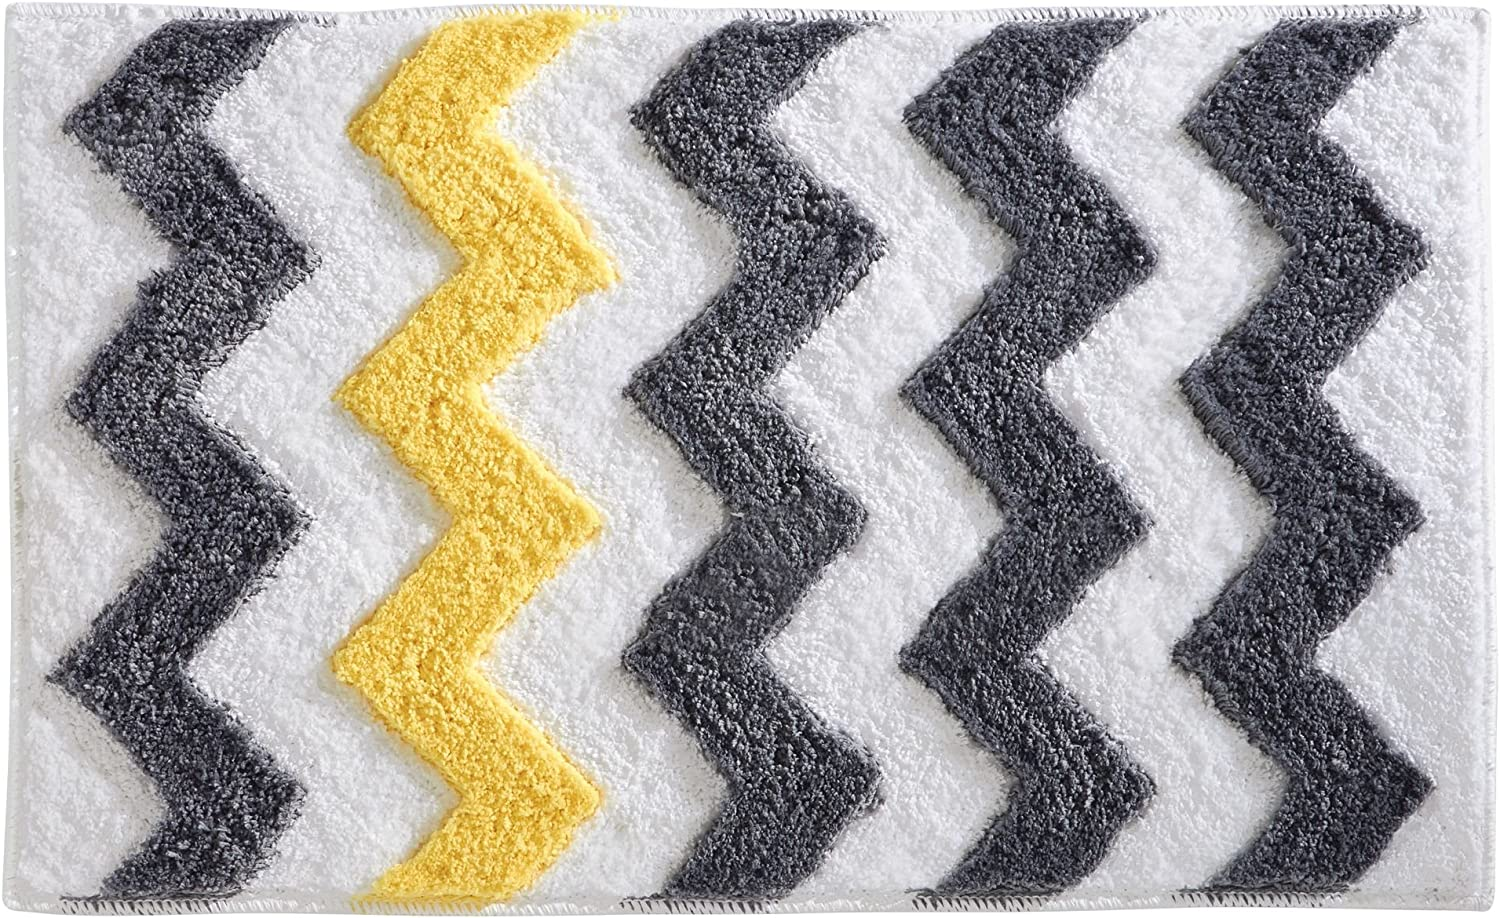 Idesign Chevron Bath Rug Machine Washable Microfiber Accent Rug For Bathroom Kitchen Bedroom Office Kid S Room 34 X 21 Gray And Yellow Home Kitchen